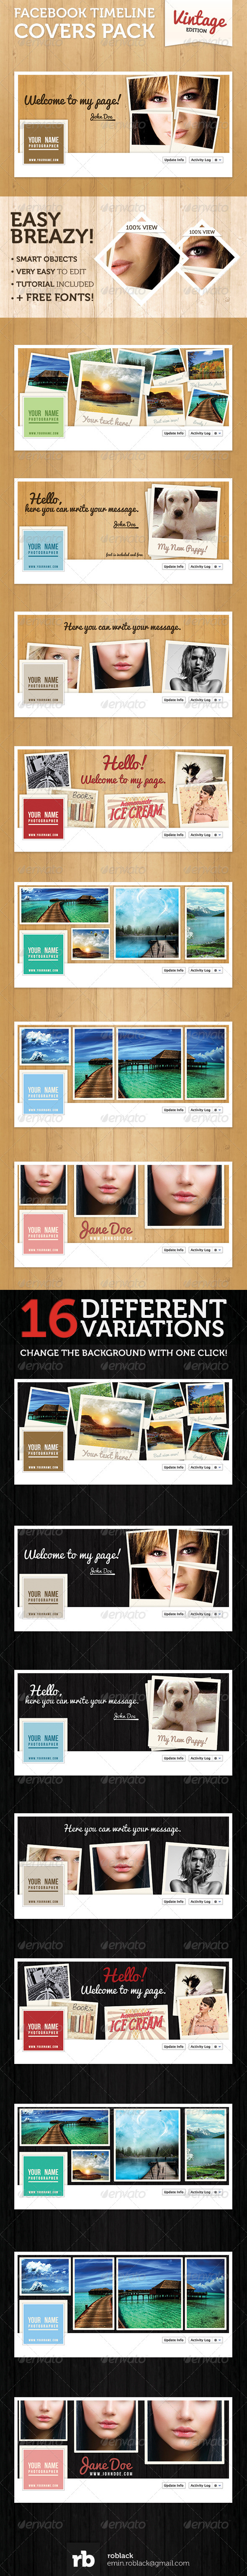 GraphicRiver Fb Timeline Covers Pack #1 4586379